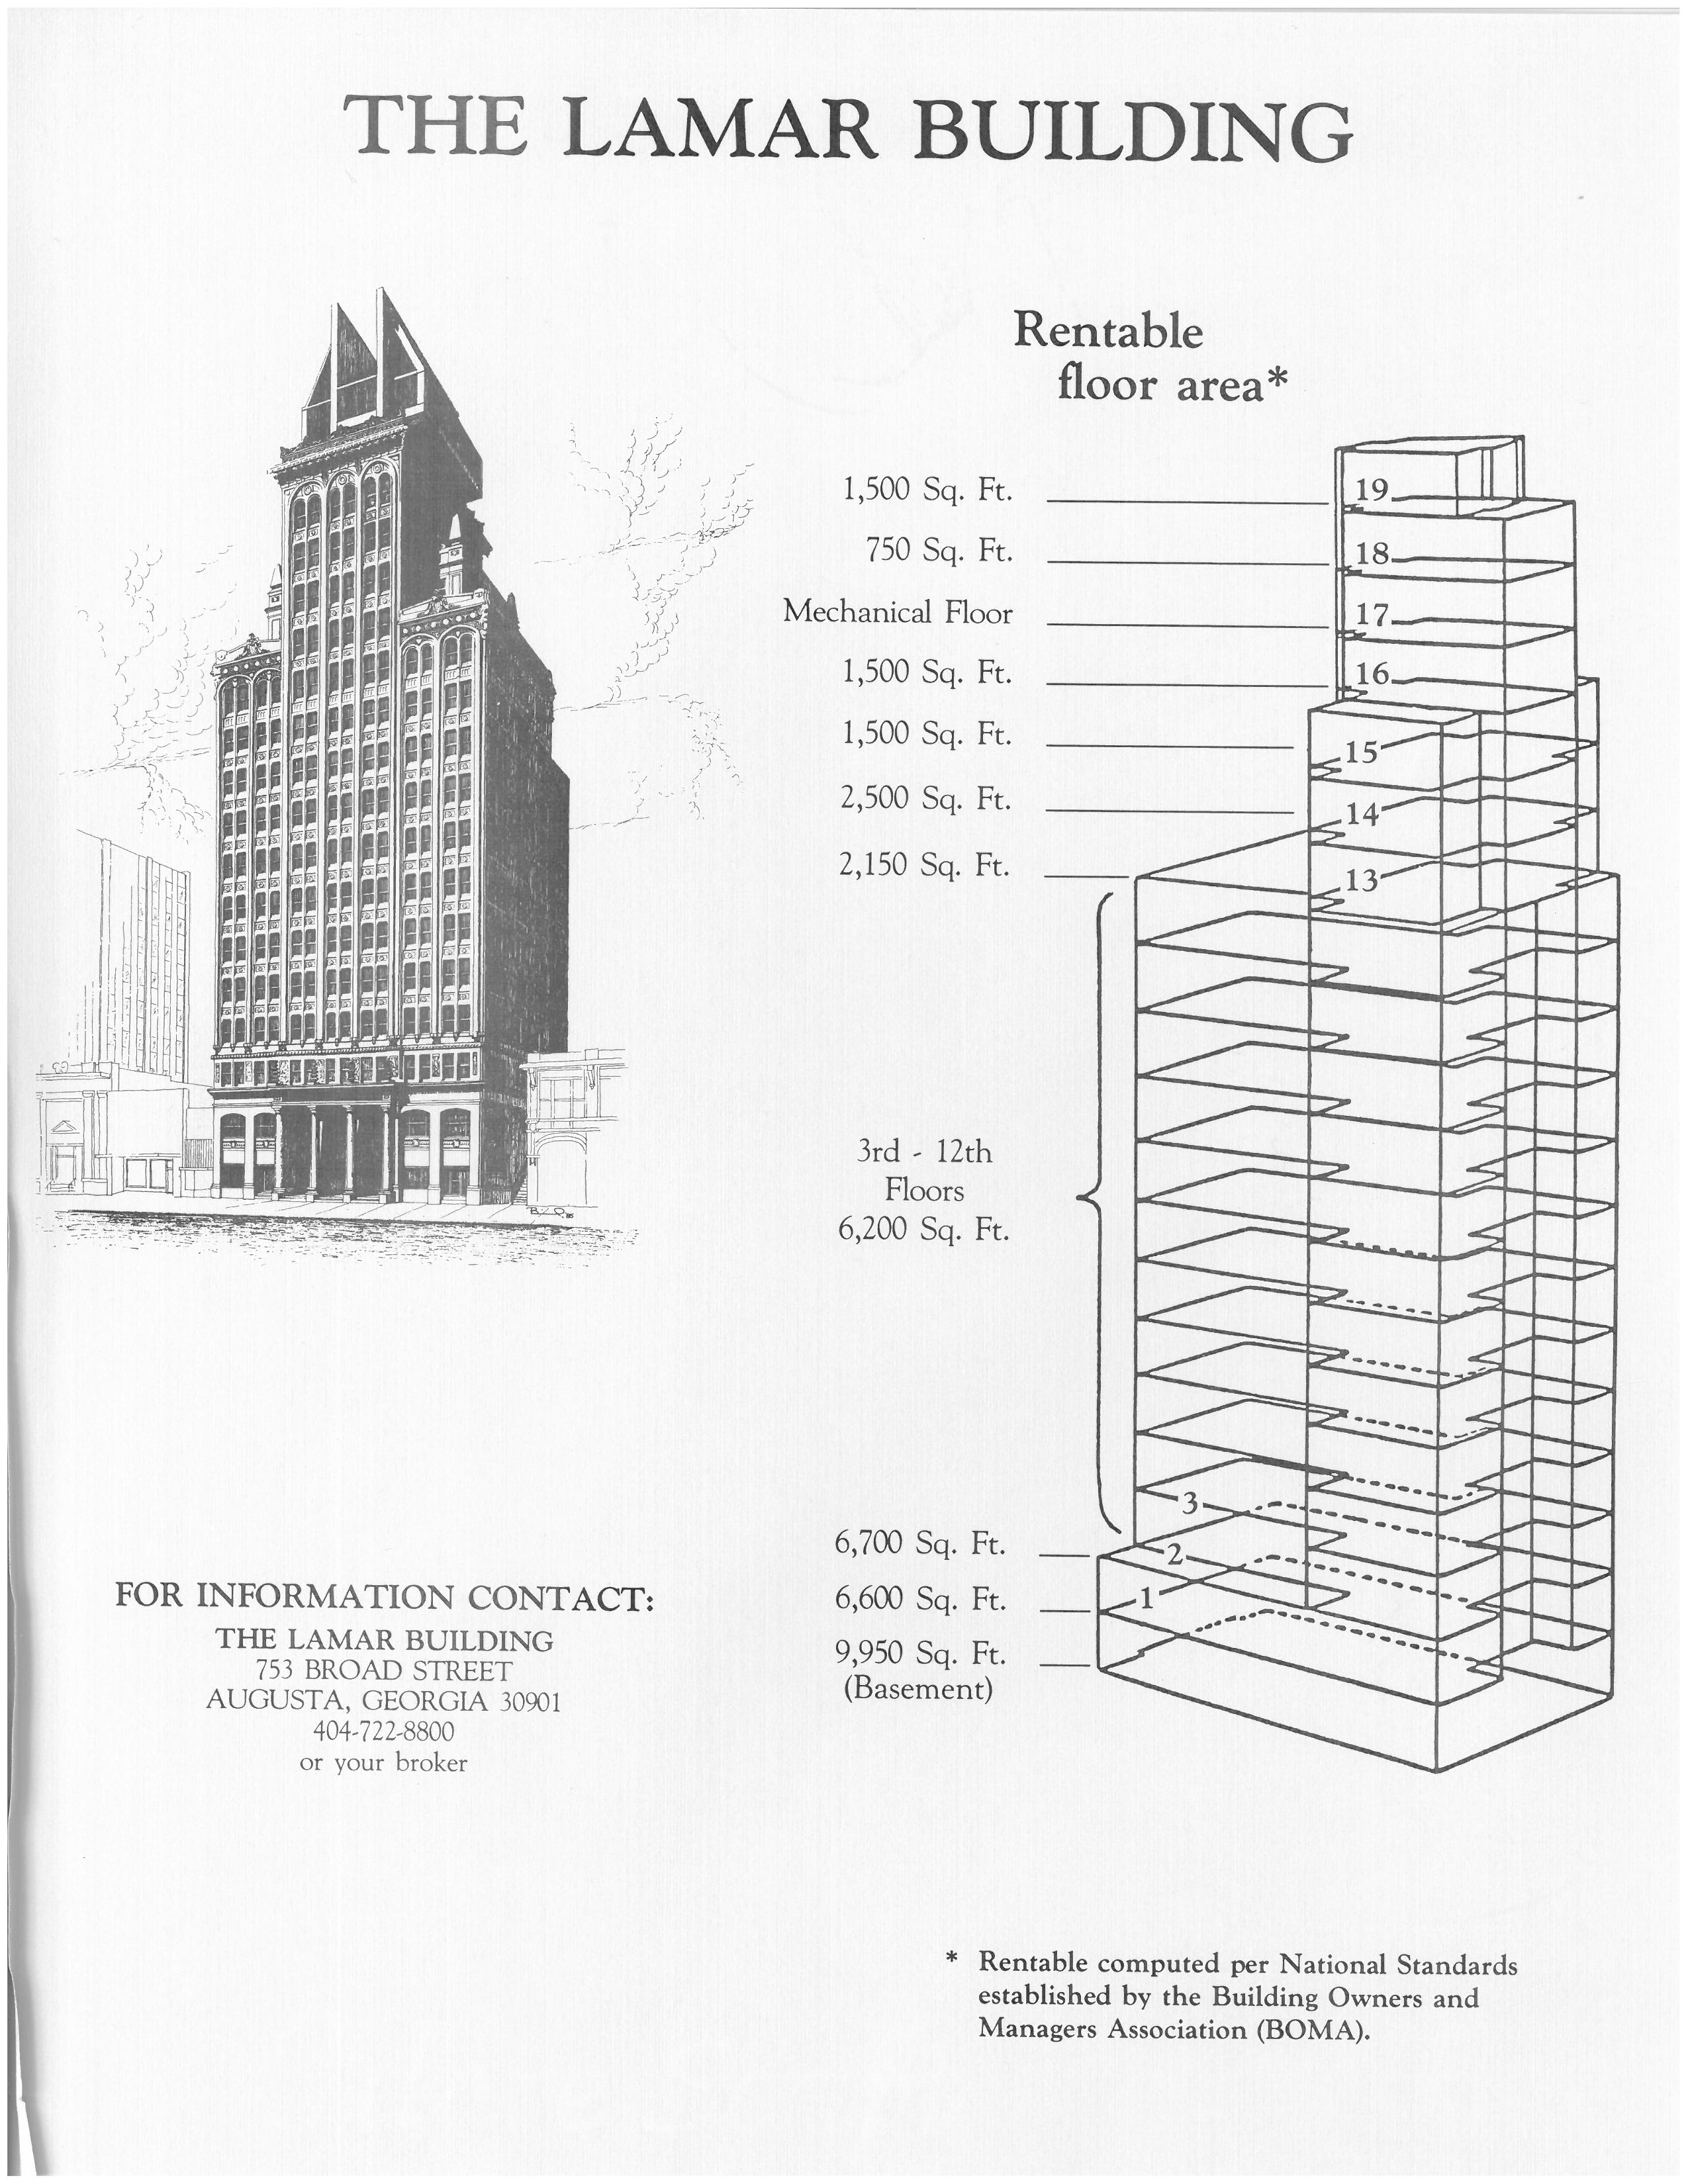 Axonometric view of Lamar Building and denoted levels